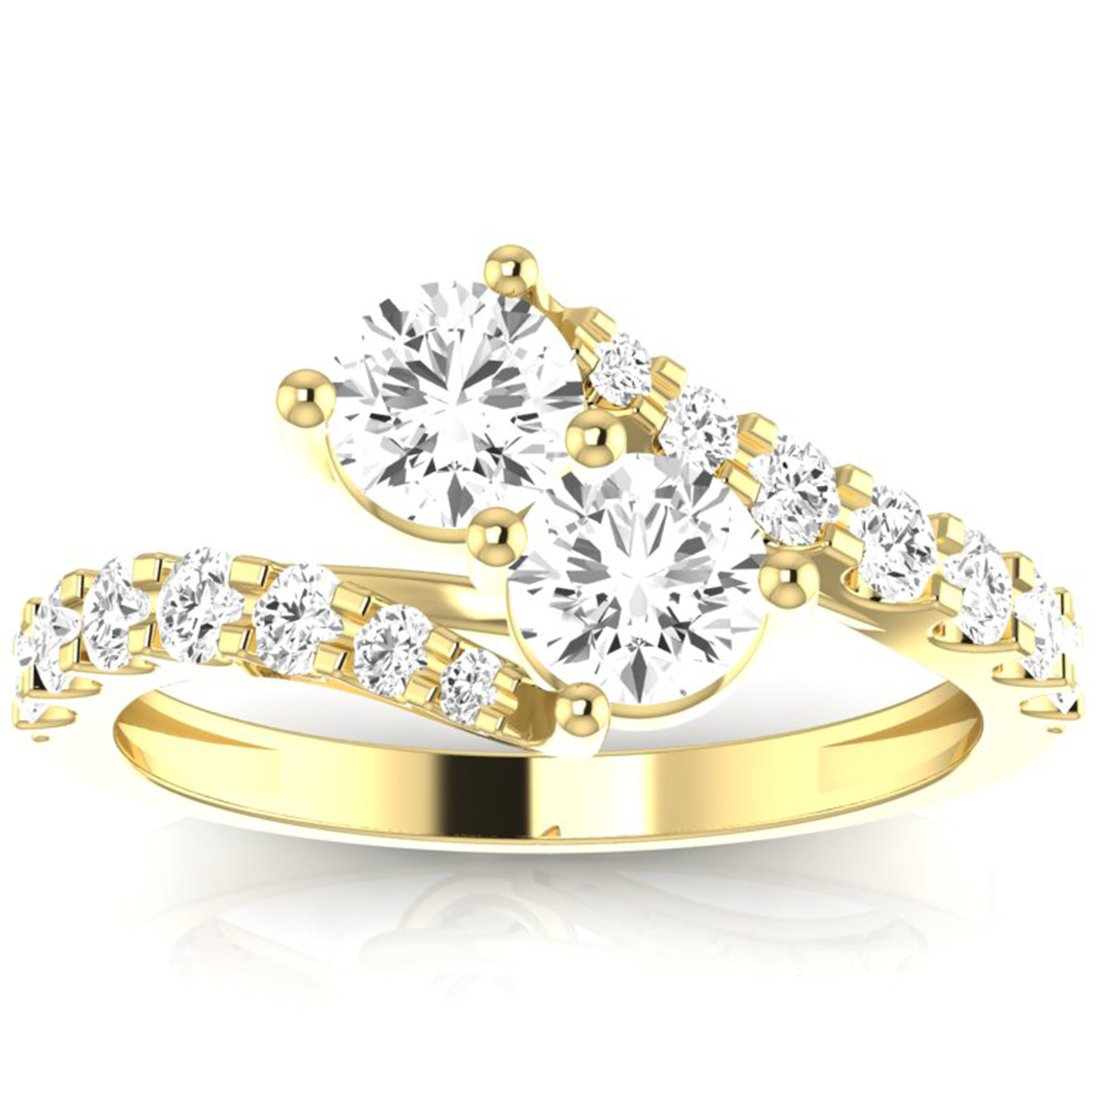 1 1/2 Carat t.w. Twisting Pave Set 2rue Love 2 Stone Collection Round 14K Yellow Gold Diamond Engagement Ring (J Color, I2 ClarityCenter Stones)